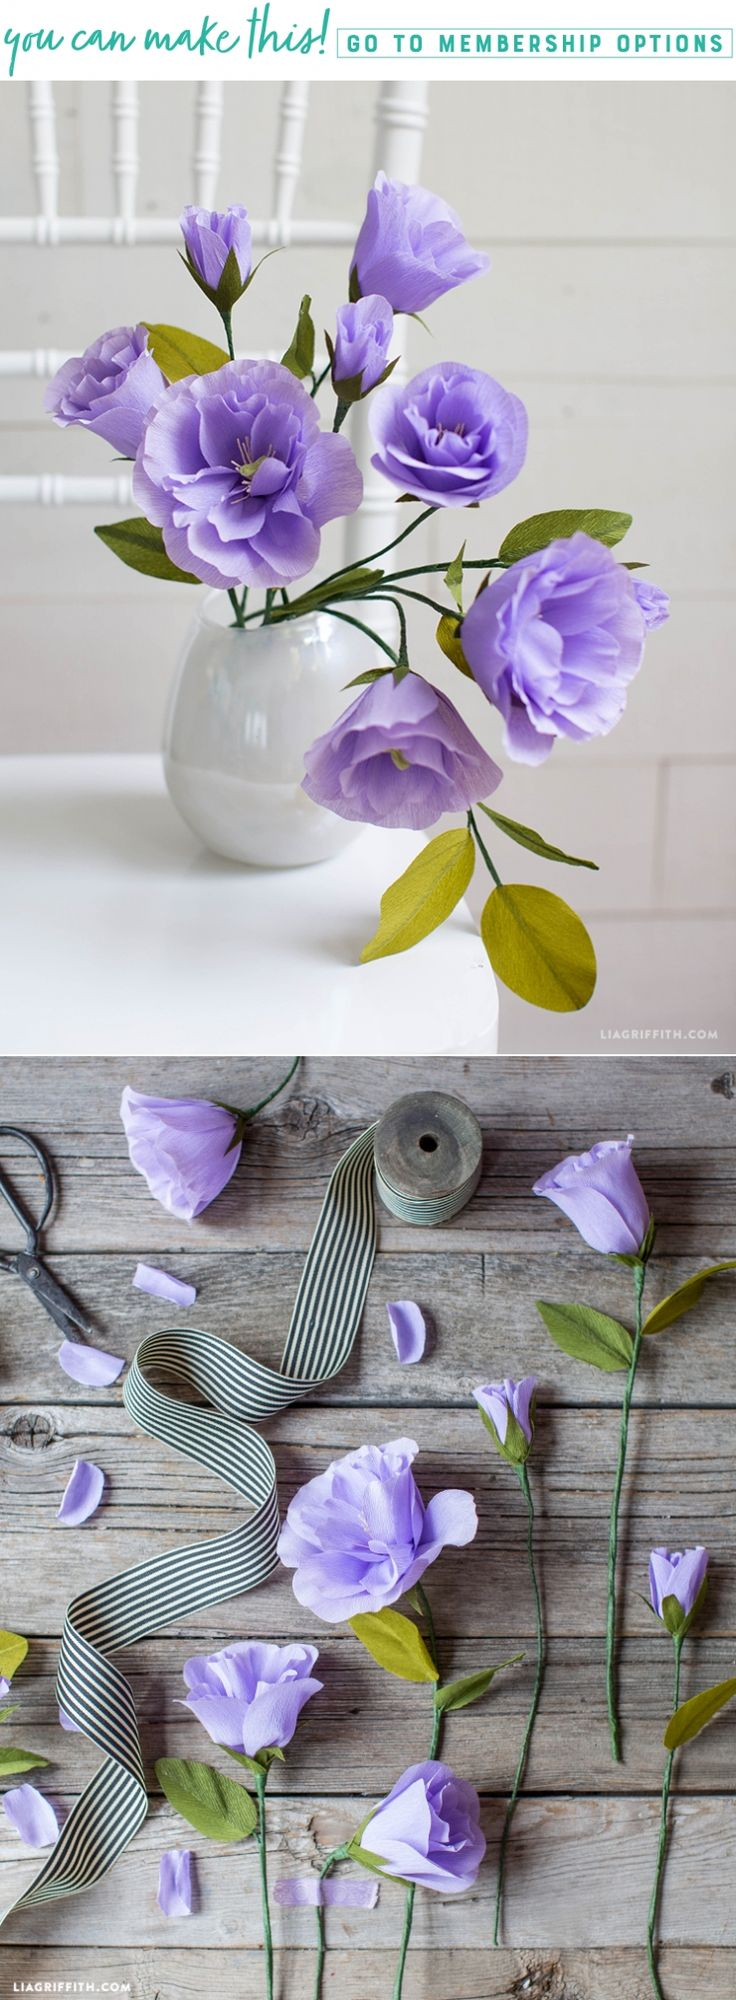 A Vision in Violet ✨ We're loving the gorgeous purple hue of this crepe paper Lisianthus. Normally these flowers can be quite finicky and tricky to grow so we found a way for you to create your own instead. Trust us, it's easier than you think. We've outlined all the tools, materials and steps you need here https://liagriffith.com/crepe-paper-lisianthus/ * * * #crepepaper #crepepaperrevival #crepepaperflowers #paper #papercut #paperlove #papercraft #papercrafts #lisianthus #handcut #purple…